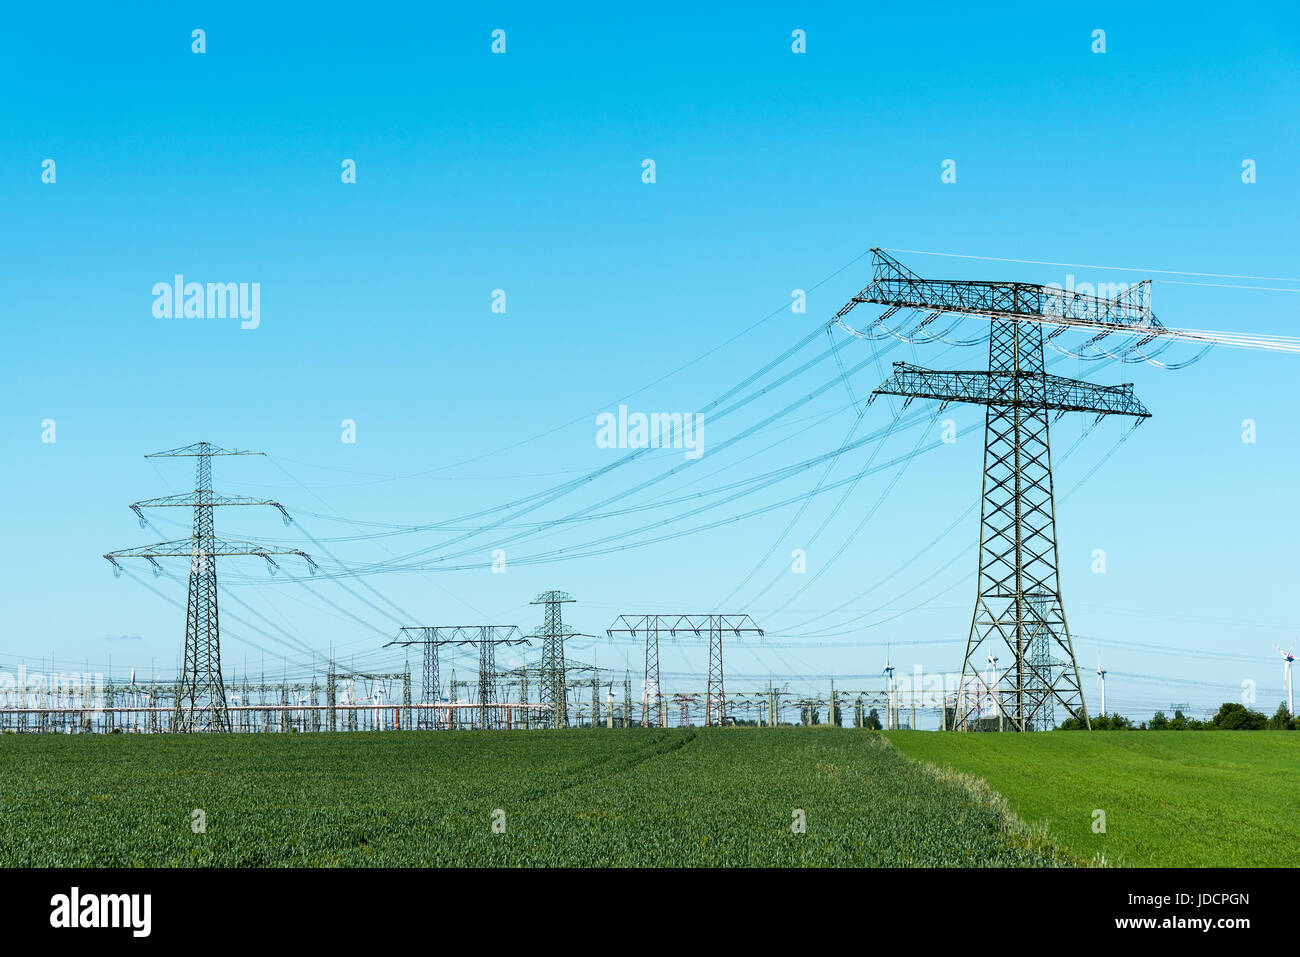 Relay station and transmission towers seen in Germany - Stock Image